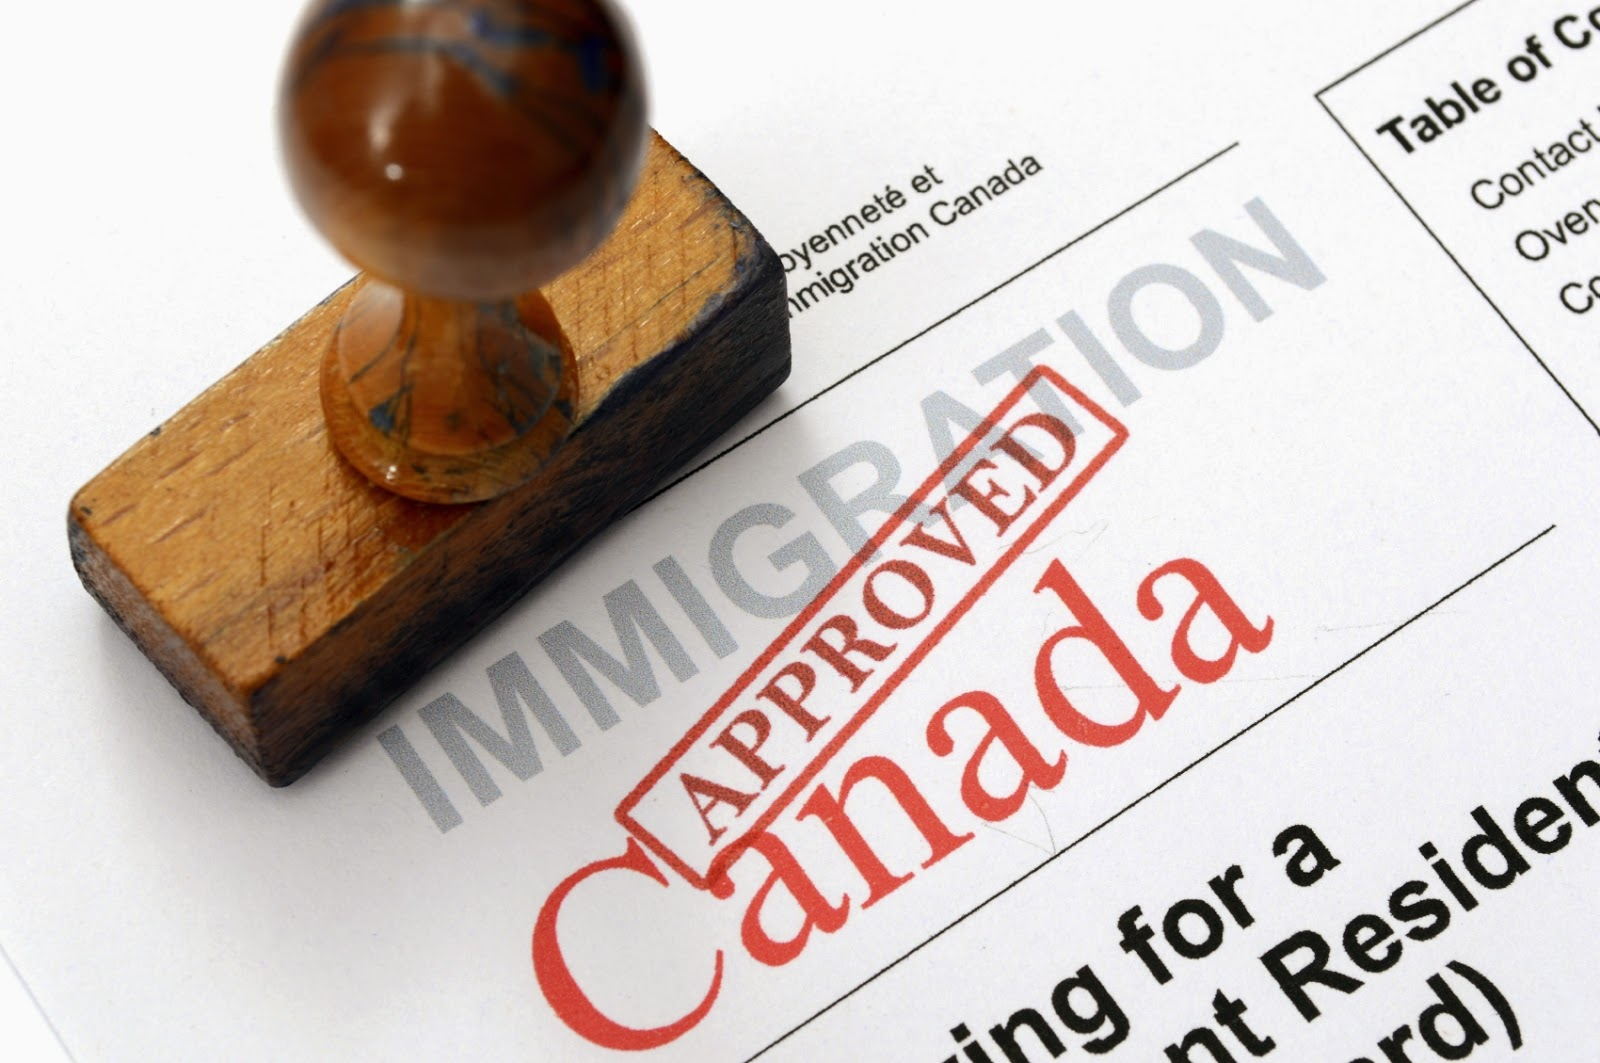 Reasons to become an immigration consultant